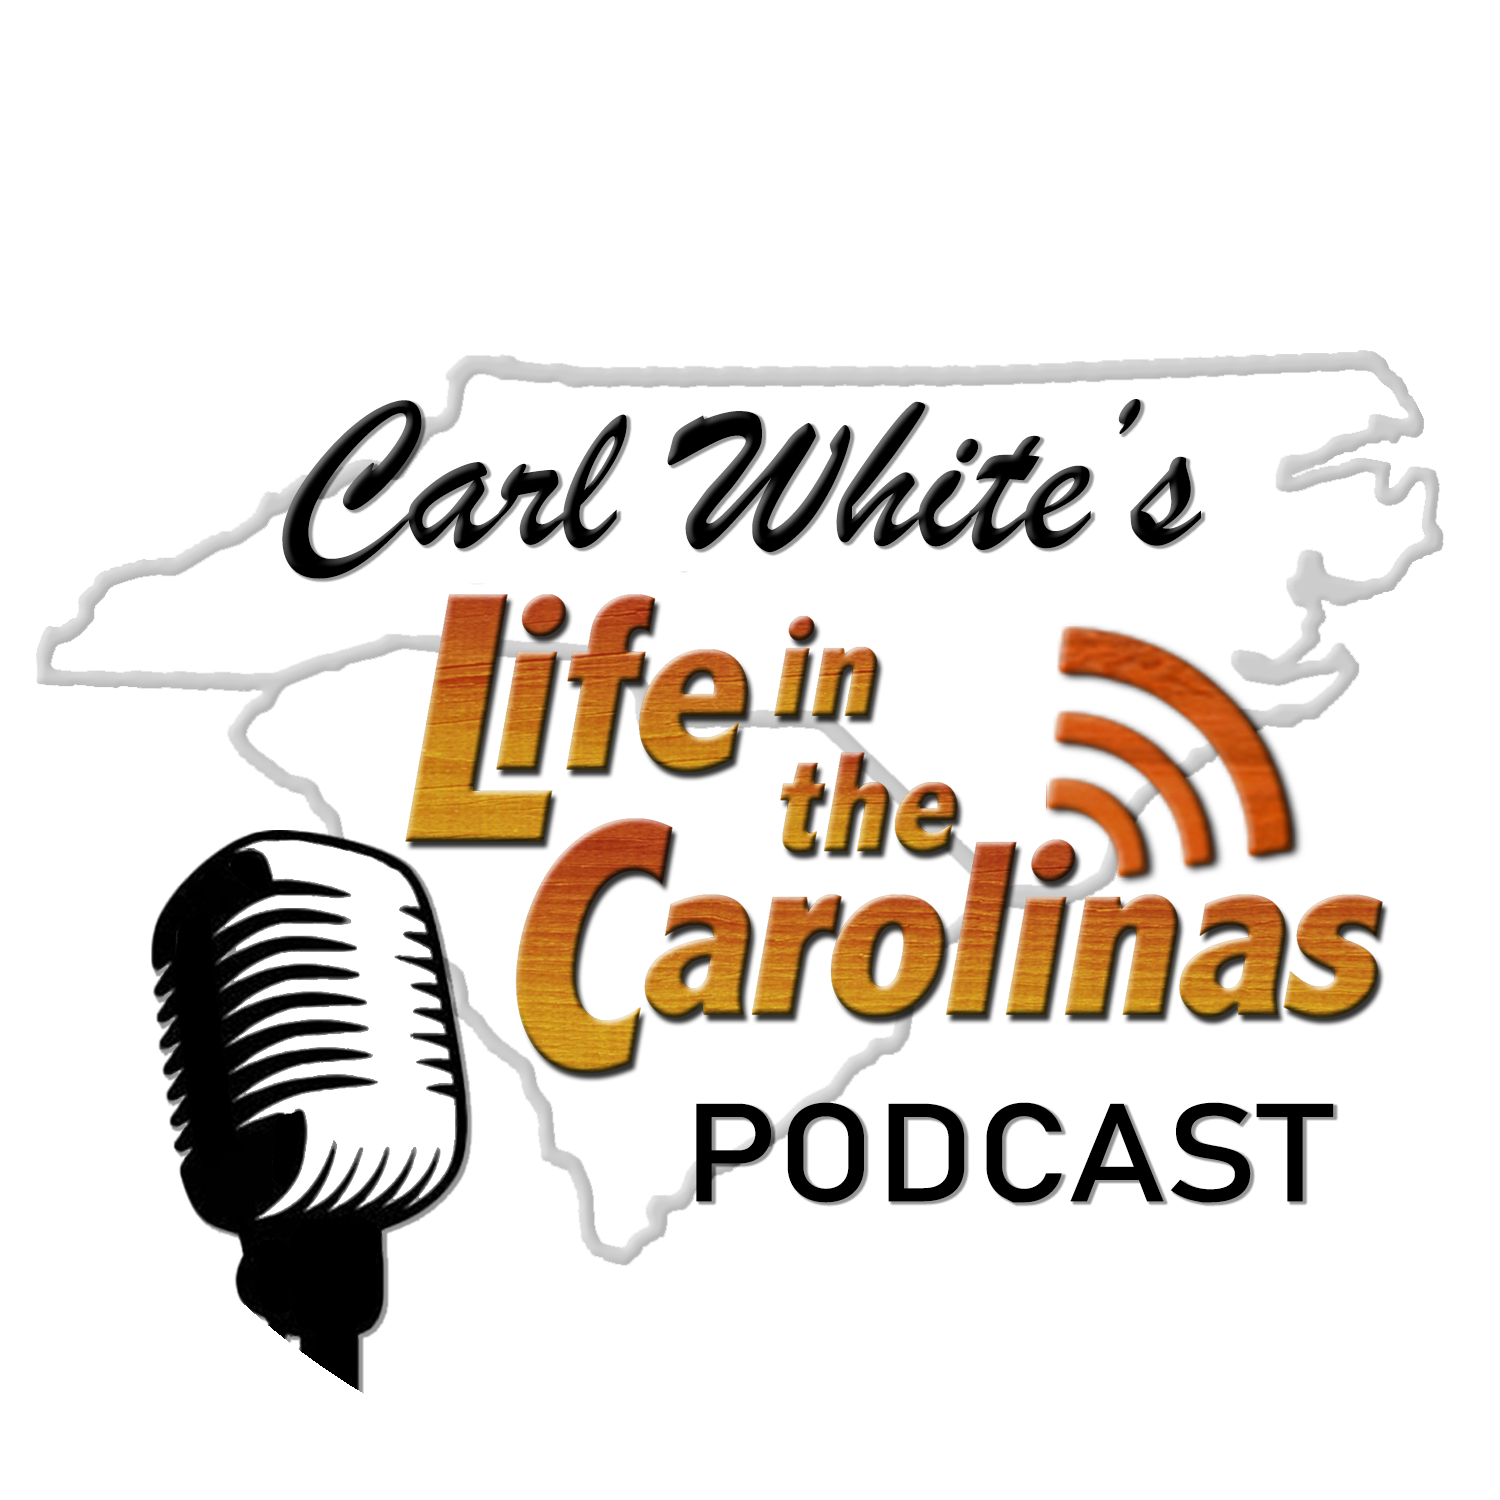 Life in the Carolinas PODCAST